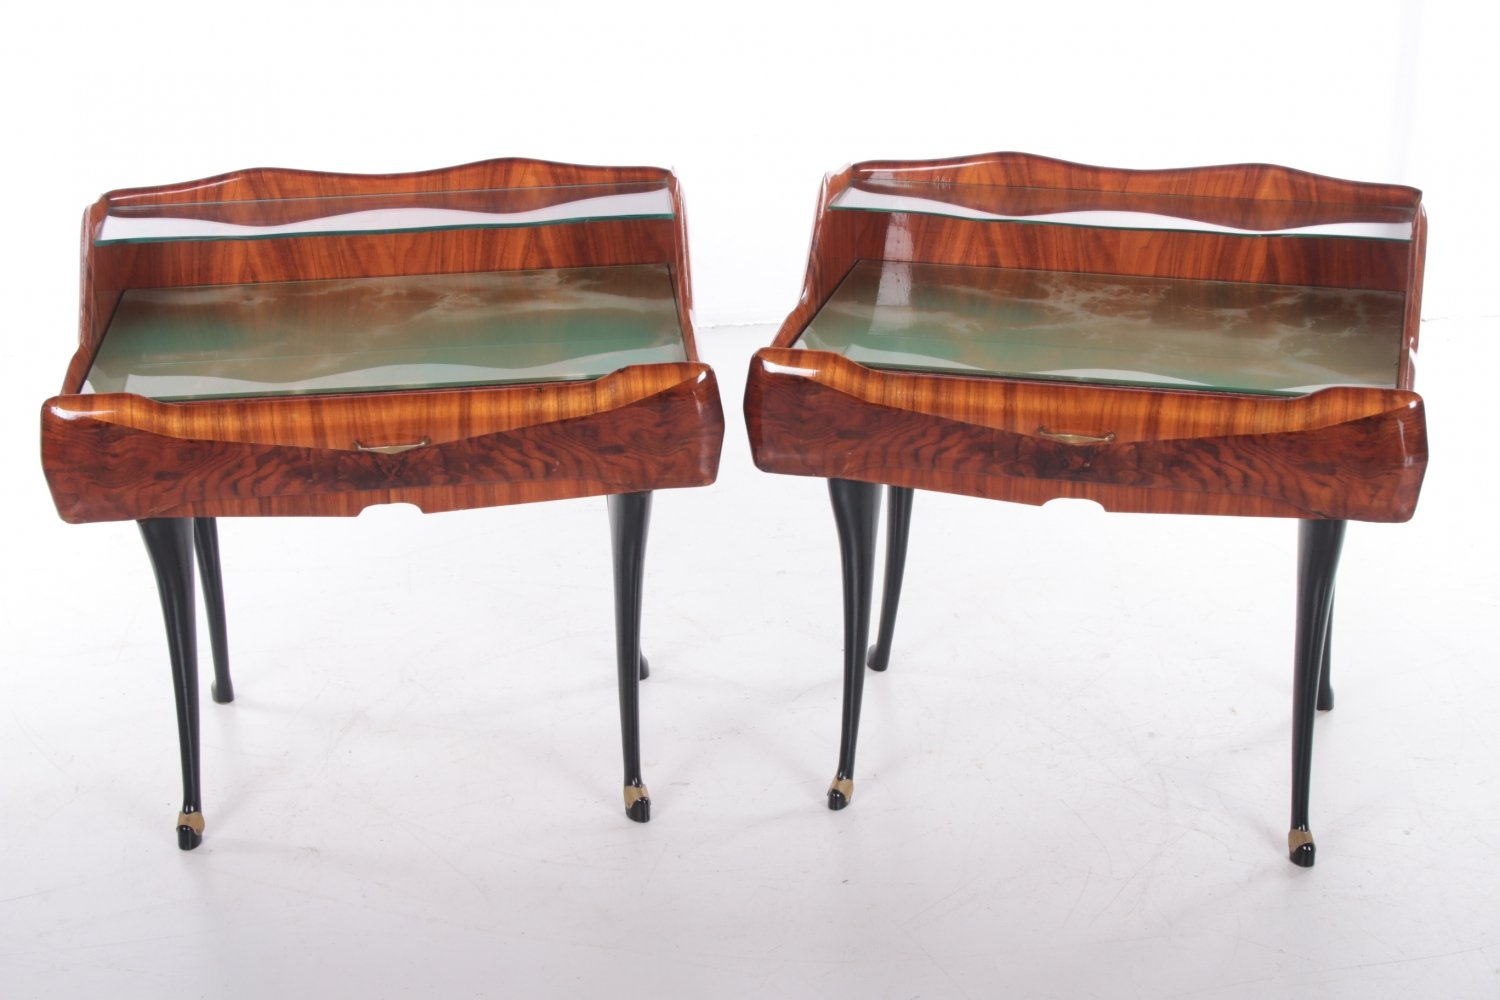 Mid-Century Modern set of bedside tables by Paolo Buffa, Italy 1950s